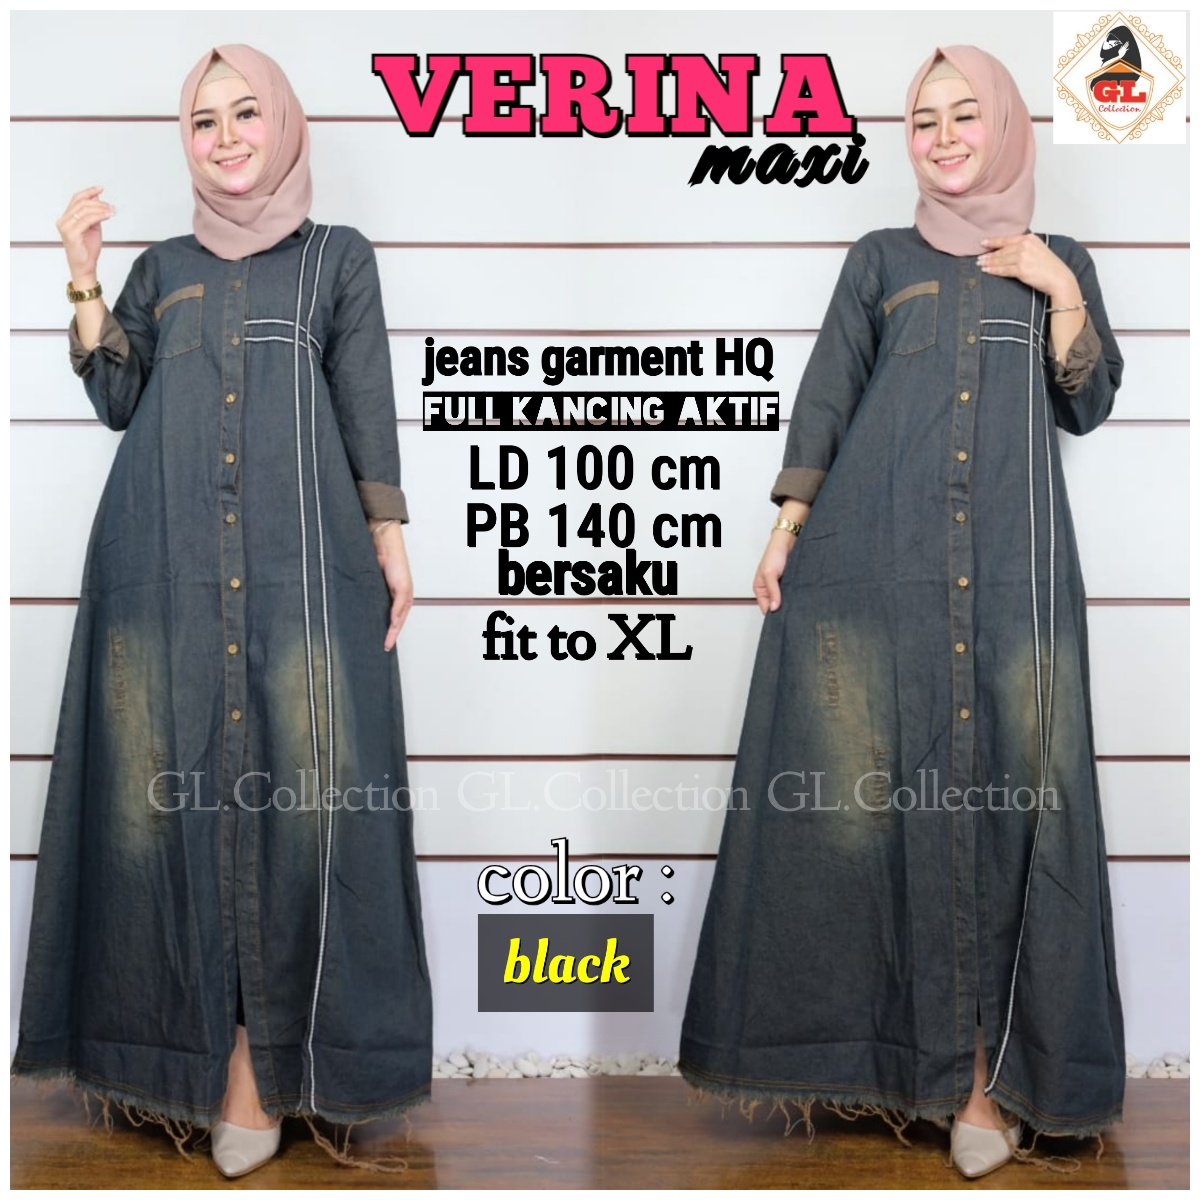 BUSANA GAMIS JEANS KASUAL - DRESS GAMIS JEANS VERINA FAB. JEANS GARMENT HQ  LD 12cm PB 12cm fit to XL